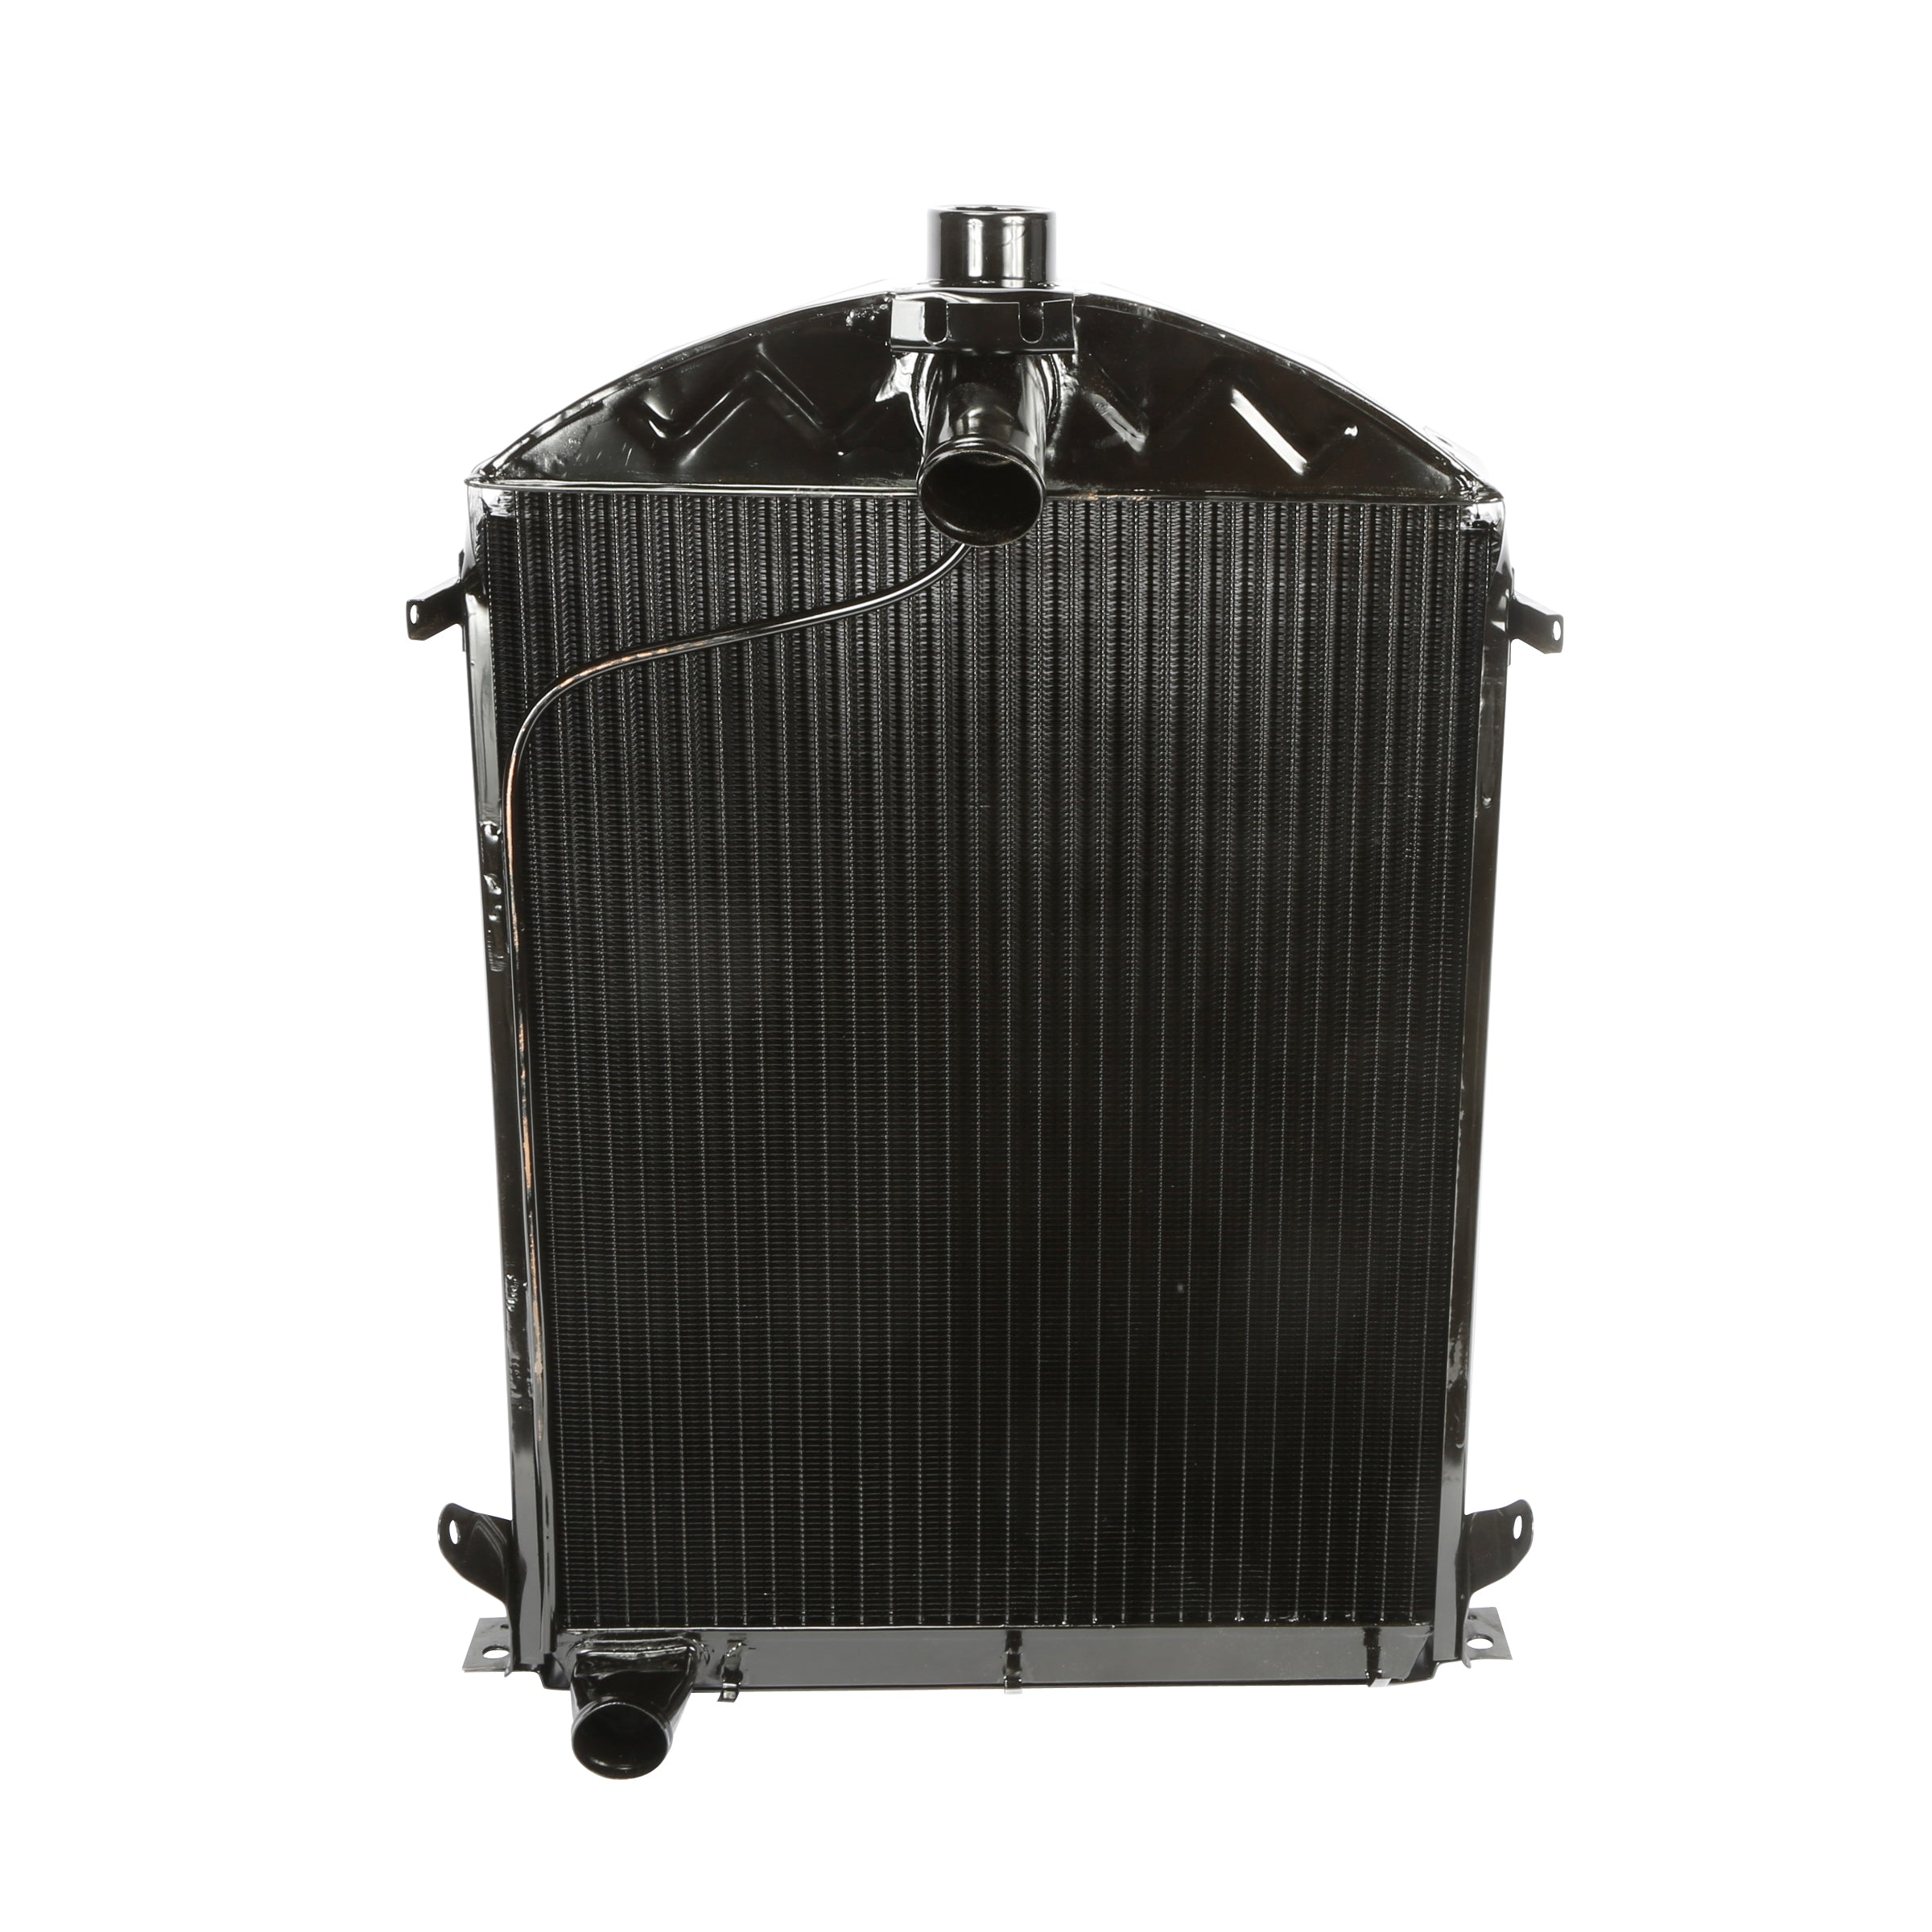 Radiator (Heavy Duty) • 1928-29 Model A Ford